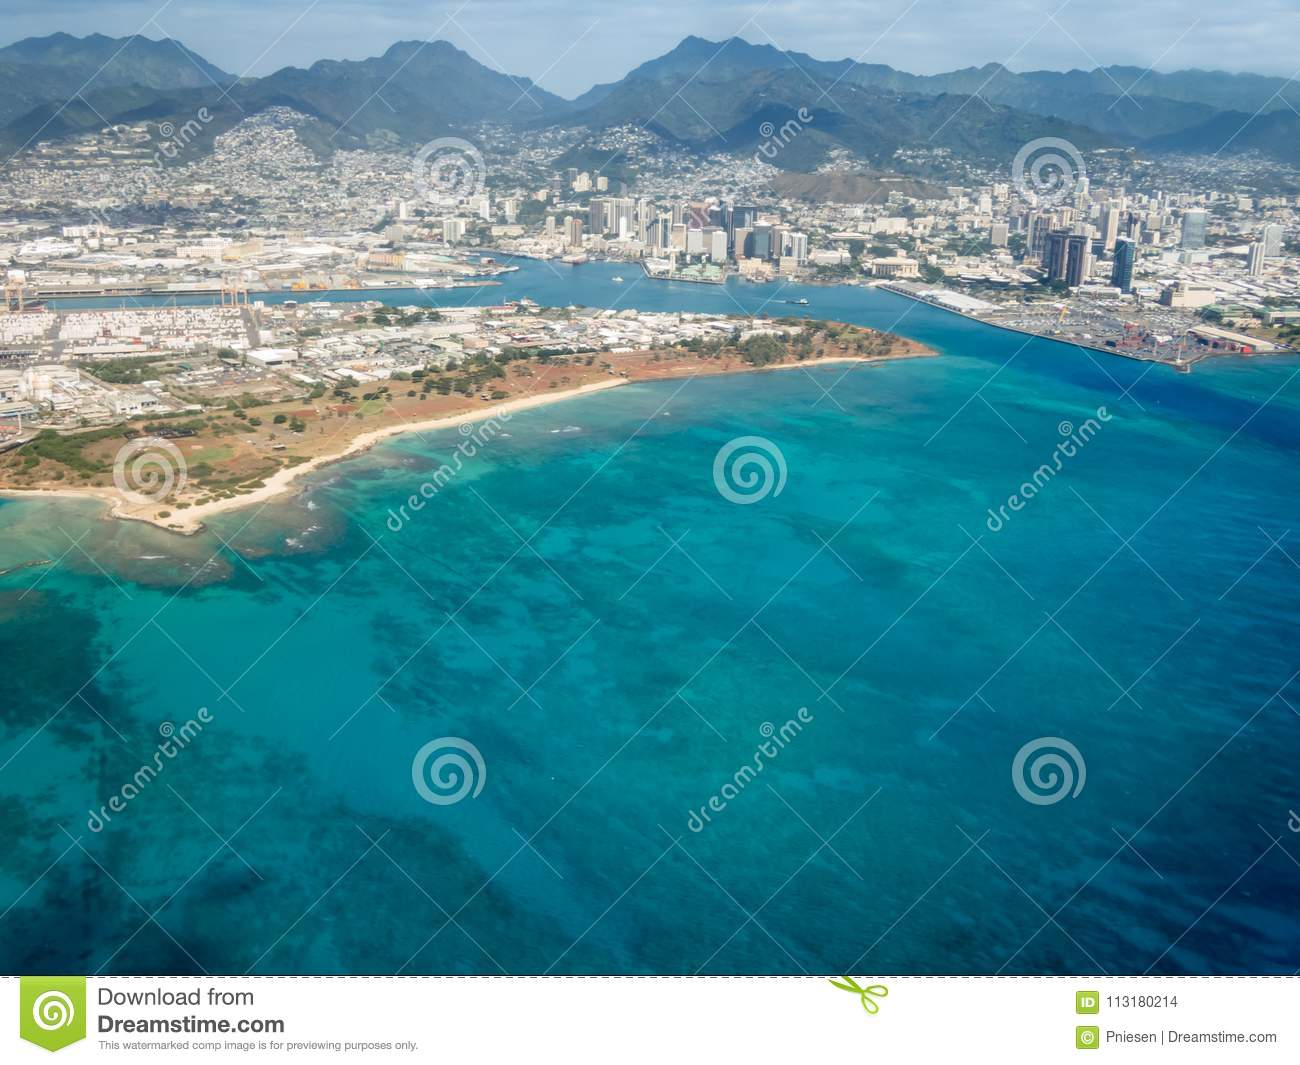 Aerial view of mountains, city, and ocean at Honolulu, Hawaii